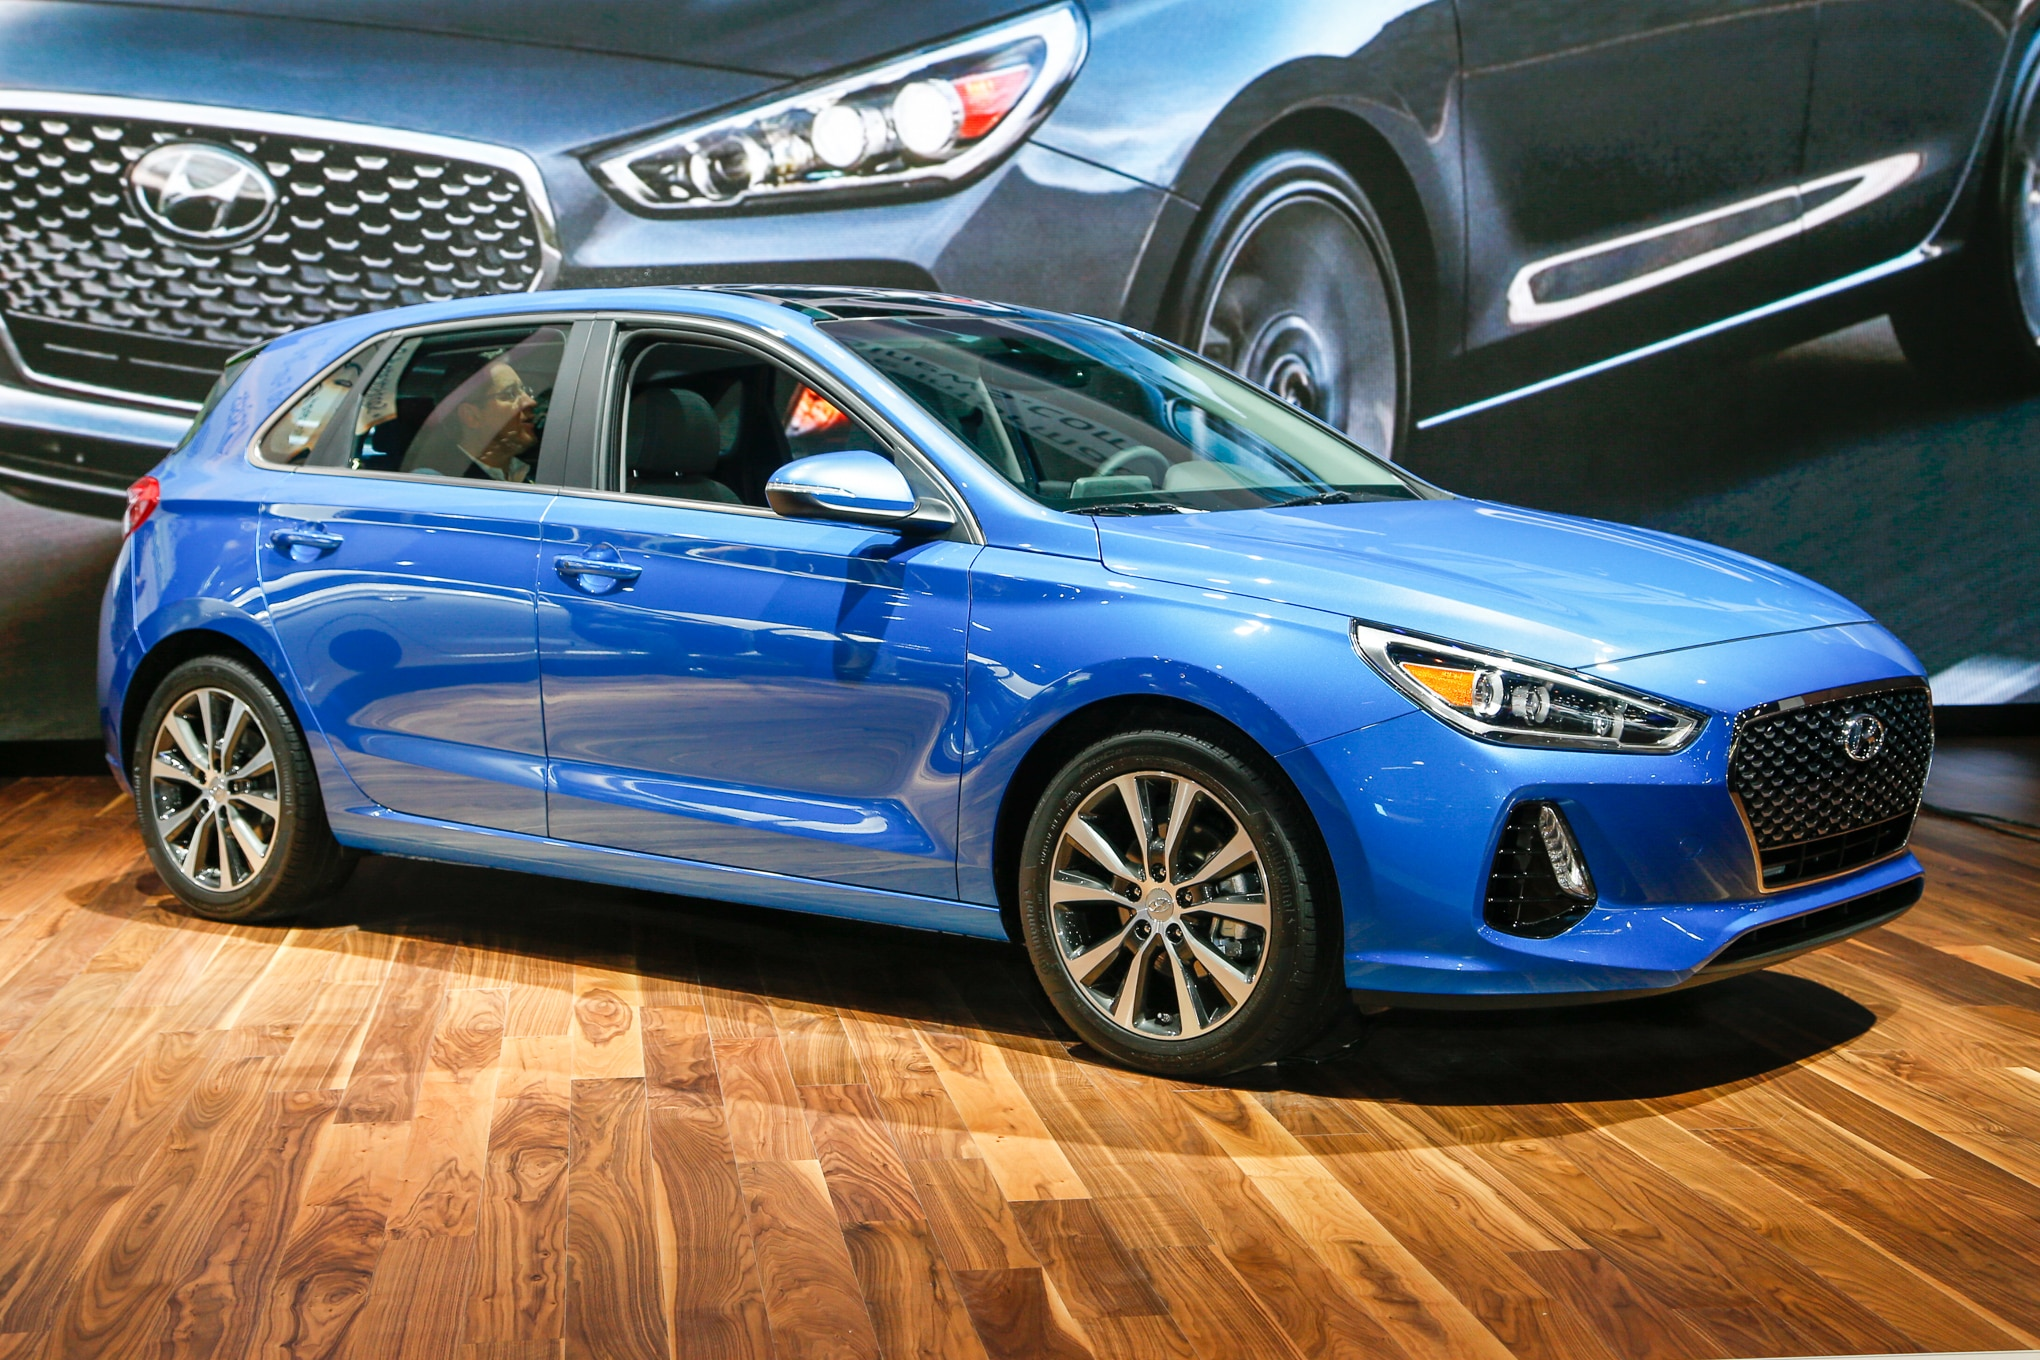 2018 Hyundai Elantra GT Hatchback Front Three Quarter 1